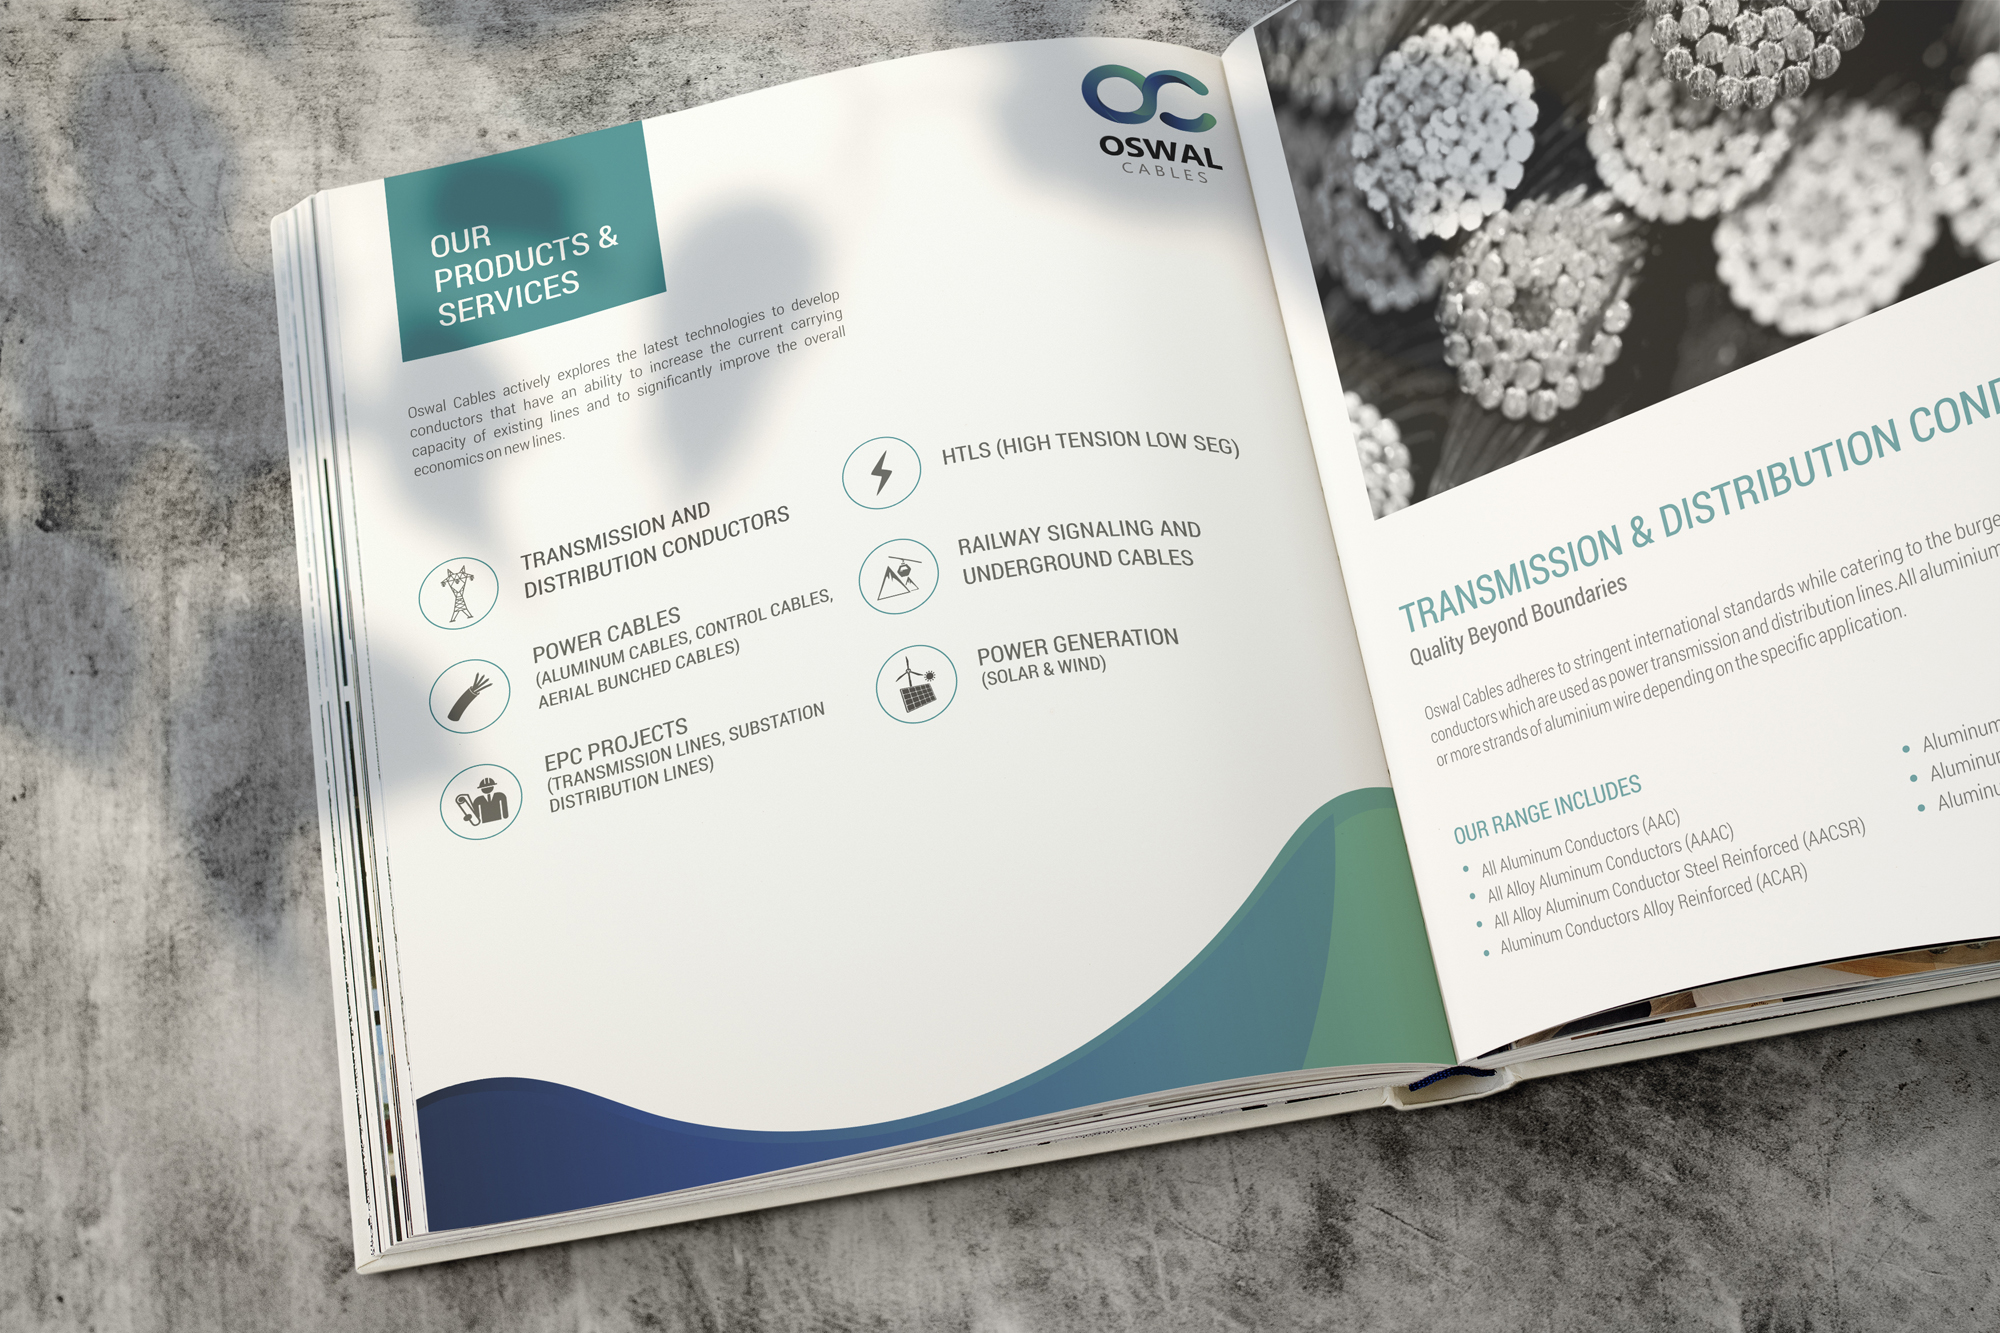 oswal cables 3d rendering brochure